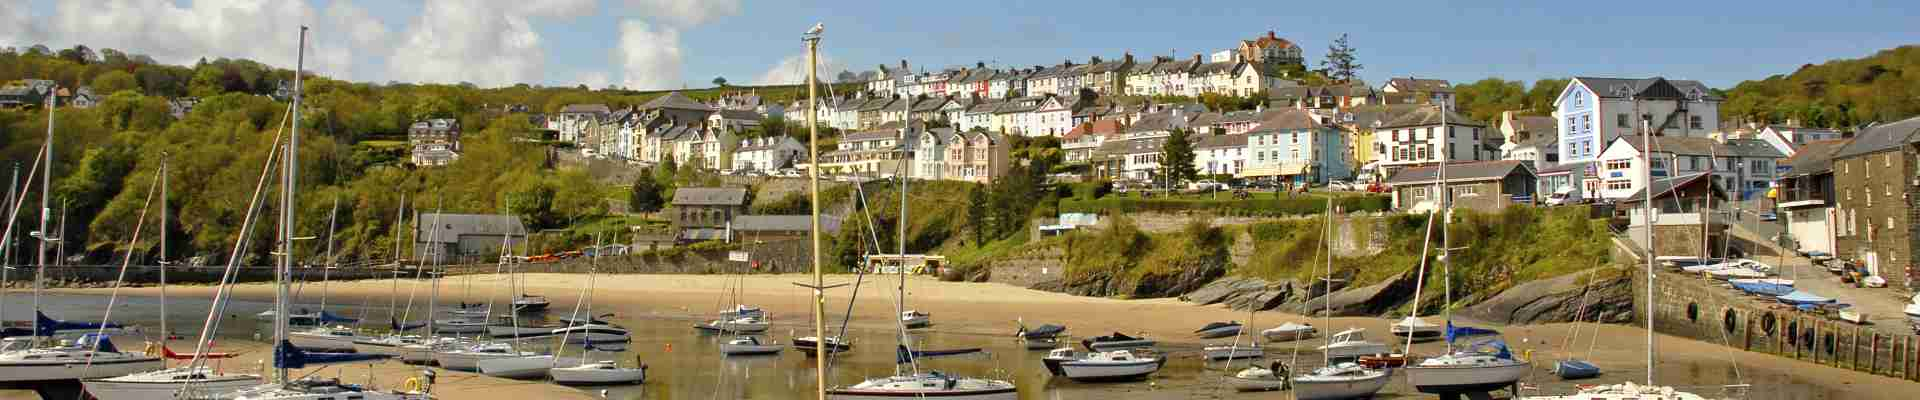 New Quay Holiday Cottages